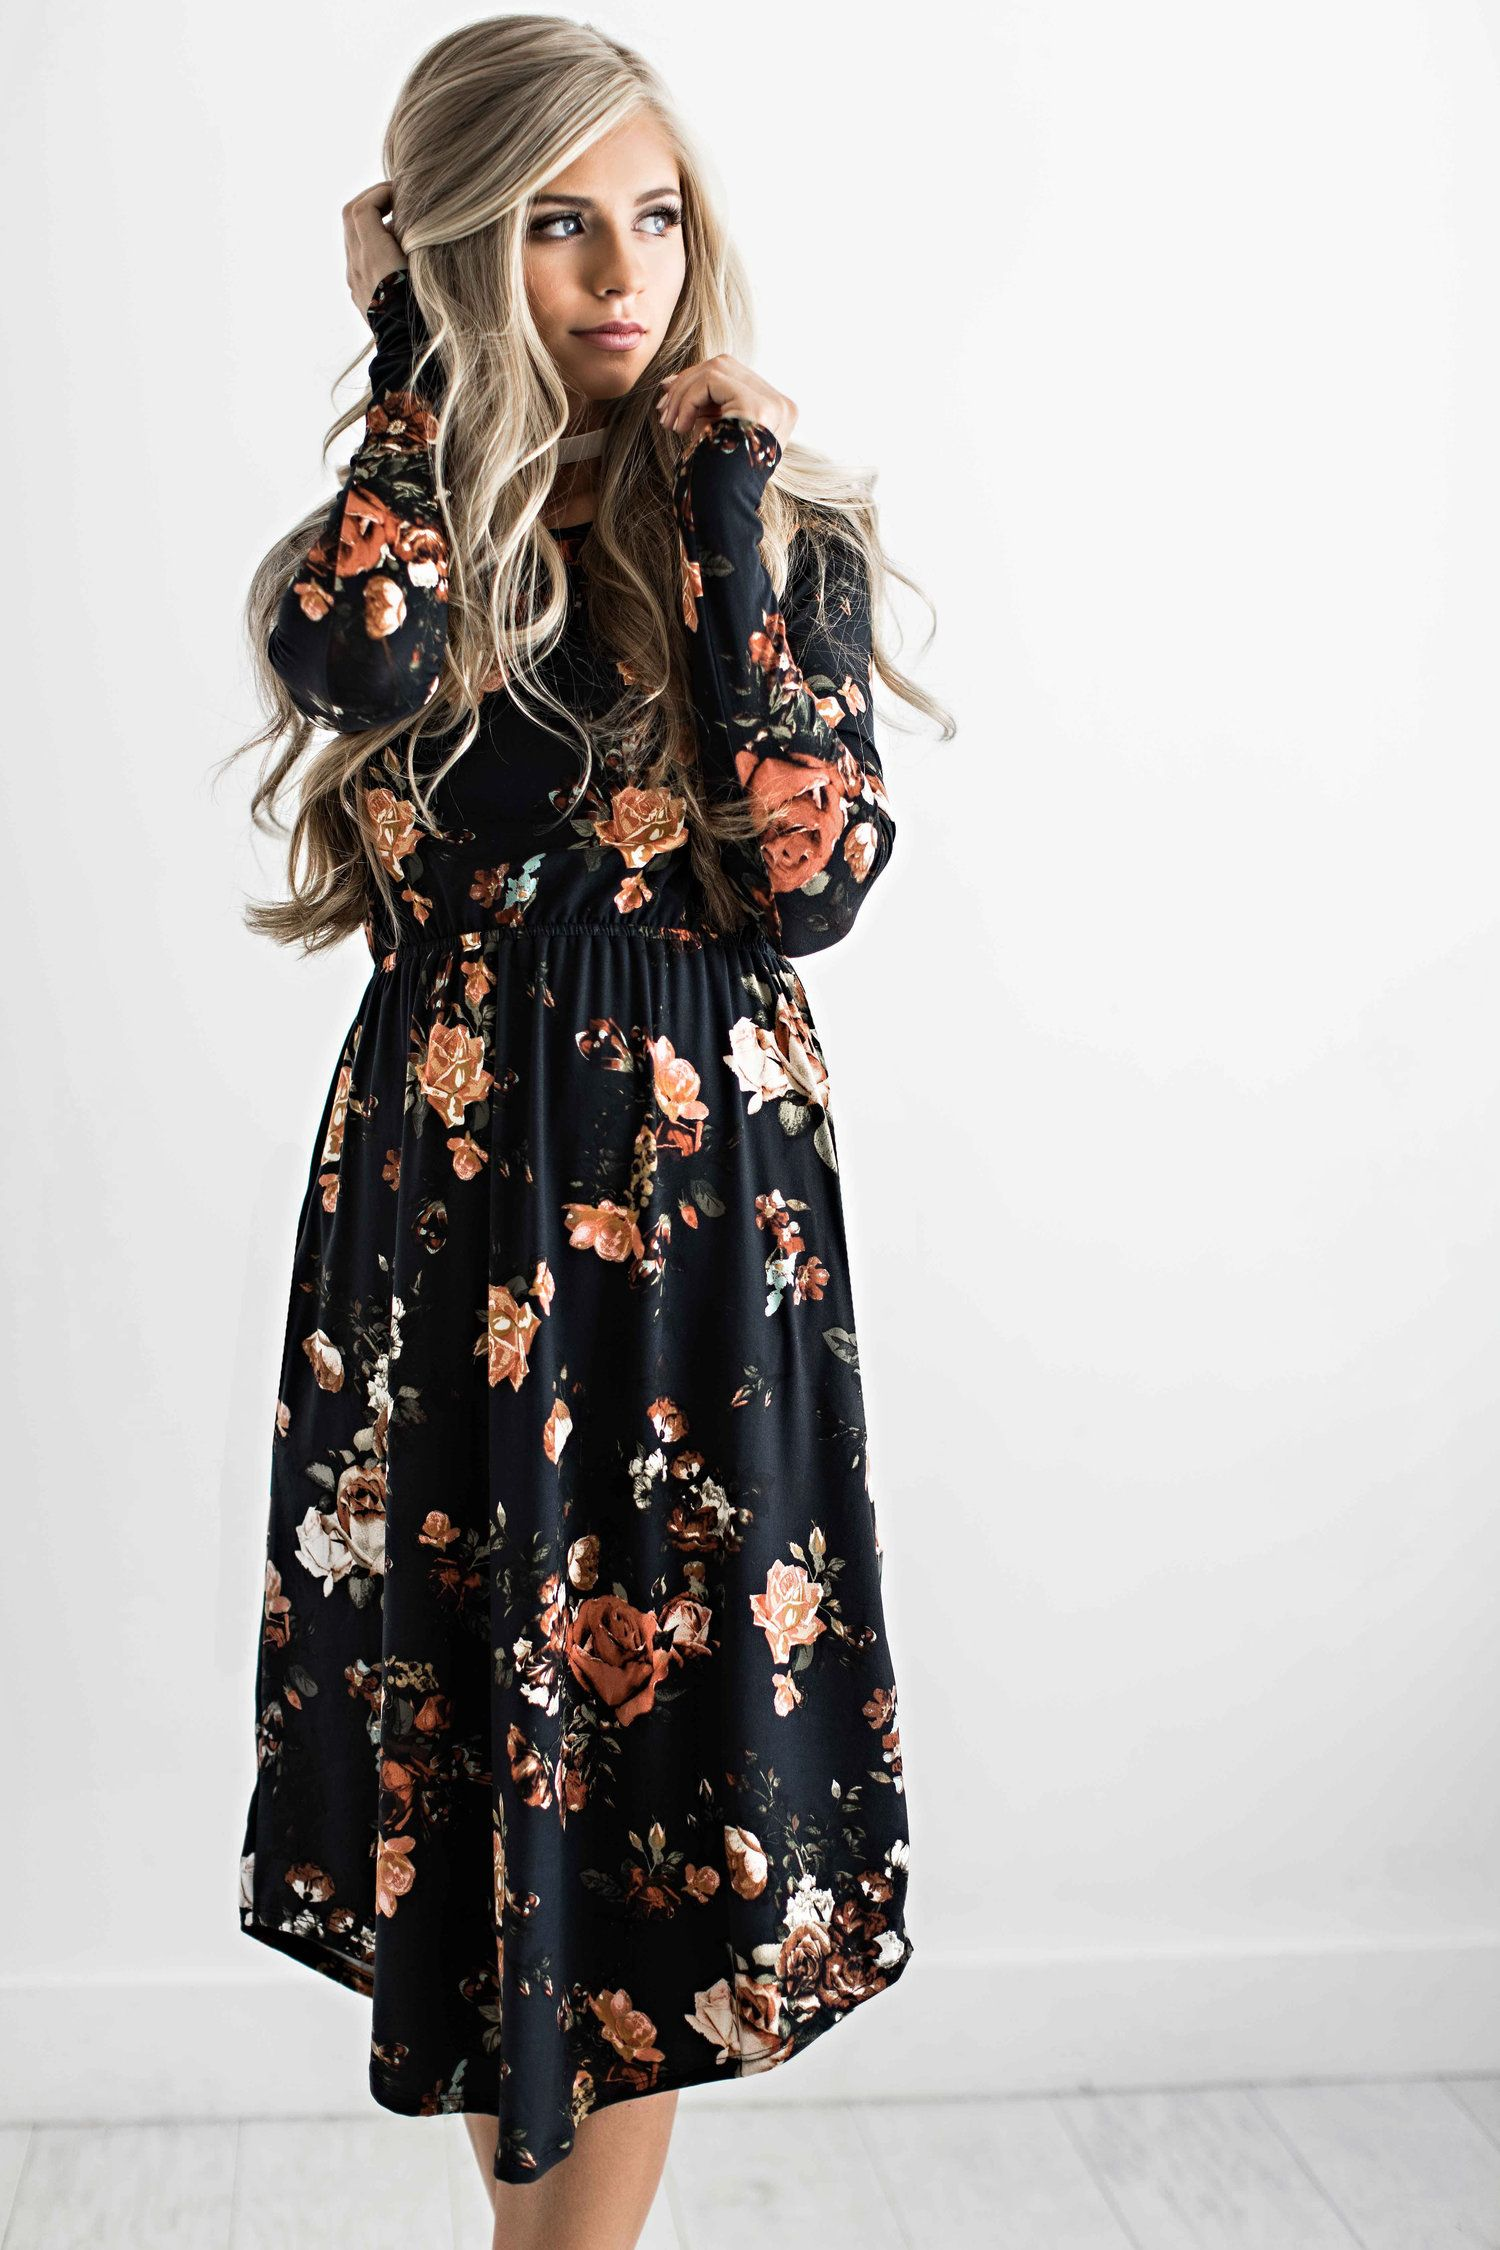 floral dress, floral, fall style, fall outfit, fall fashion ...